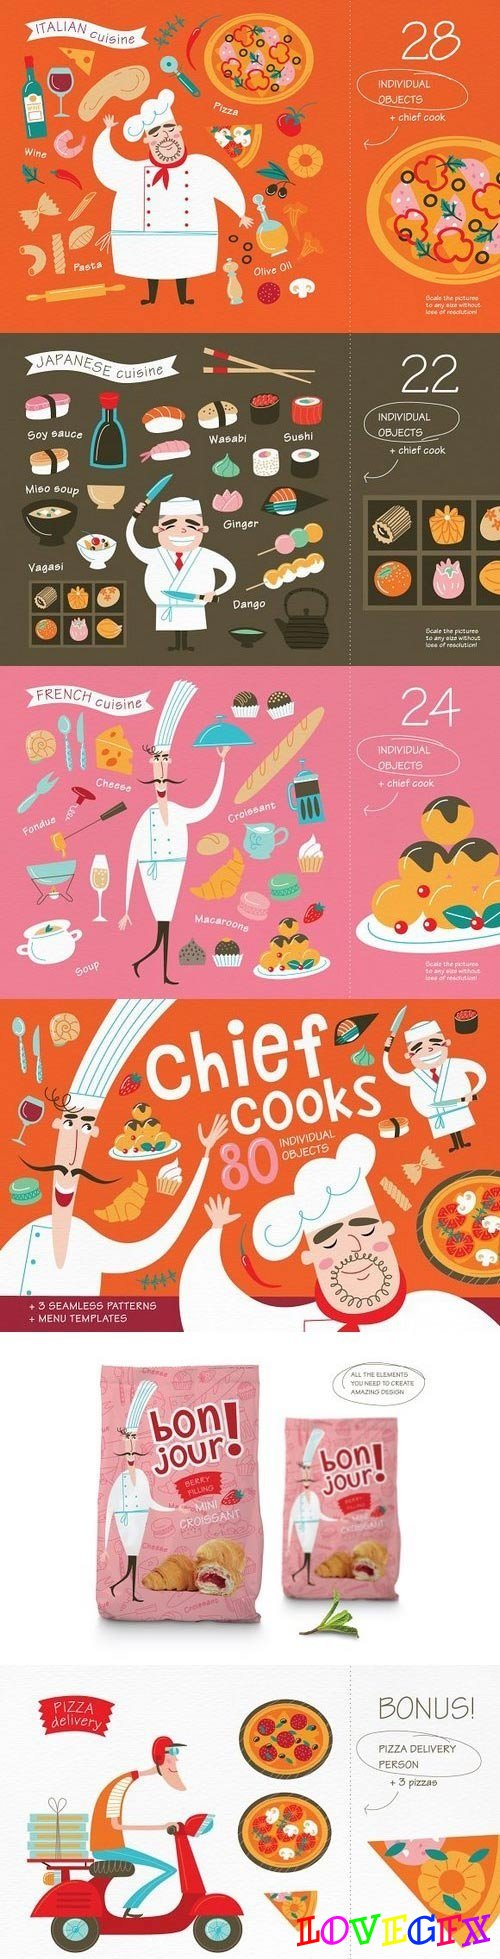 Chief cooks. National cuisines. 1347105